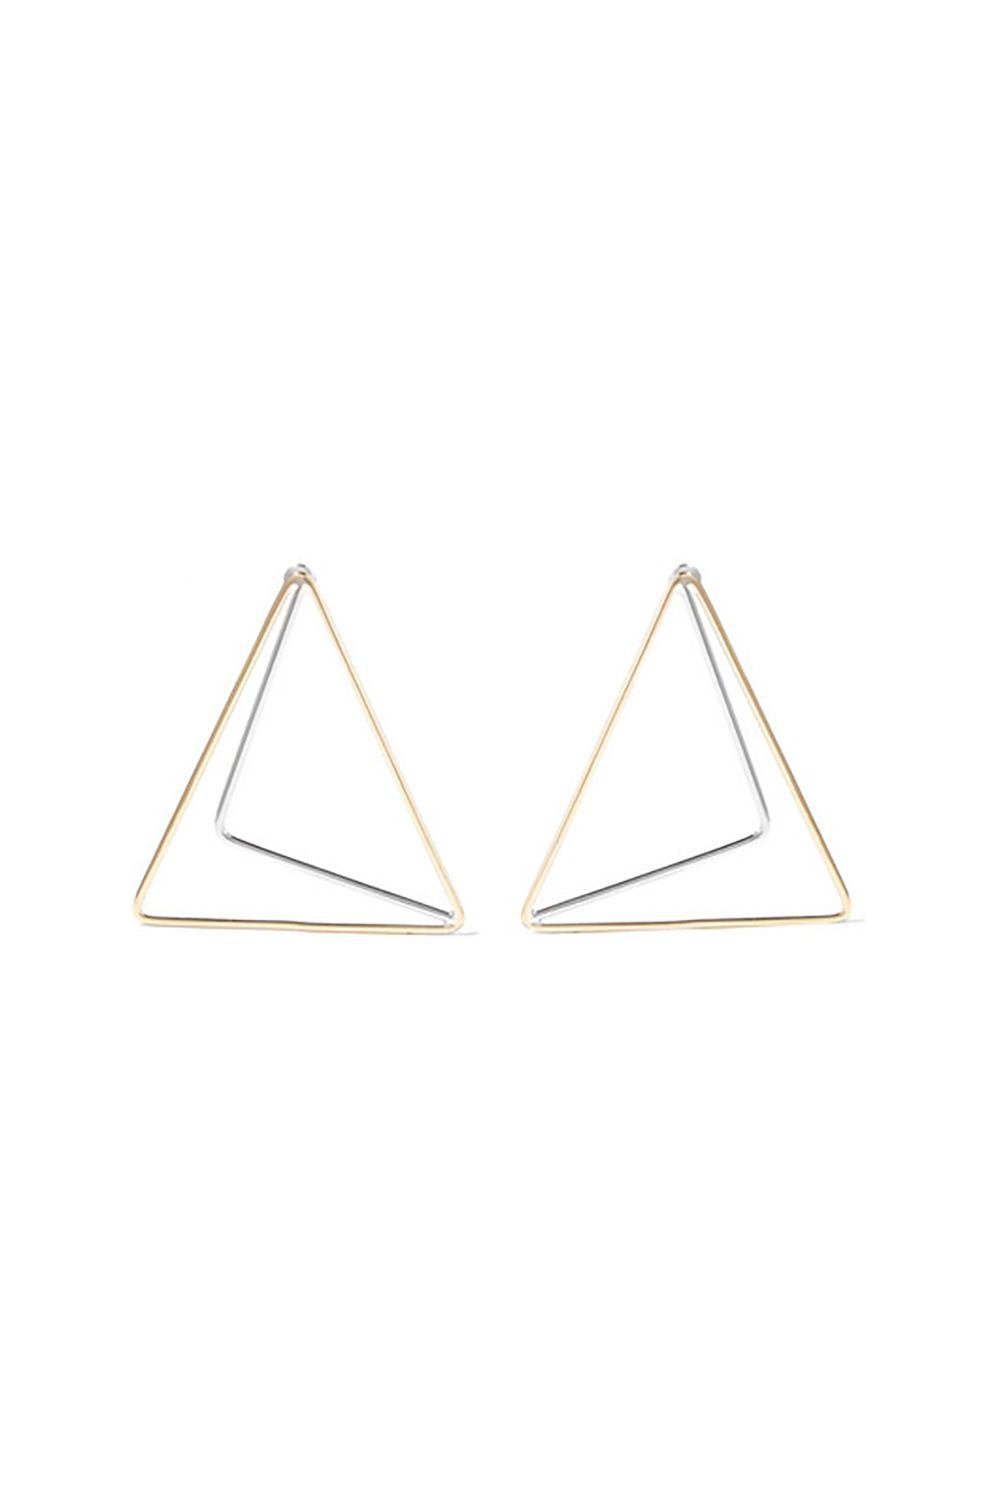 "<p>#fashionpaperclip</p><p>$70, <a href=""https://www.net-a-porter.com/us/en/product/746762/anndra_neen/gold-and-silver-plated-earrings"" target=""_blank"">net-a-porter.com</a>.</p>"